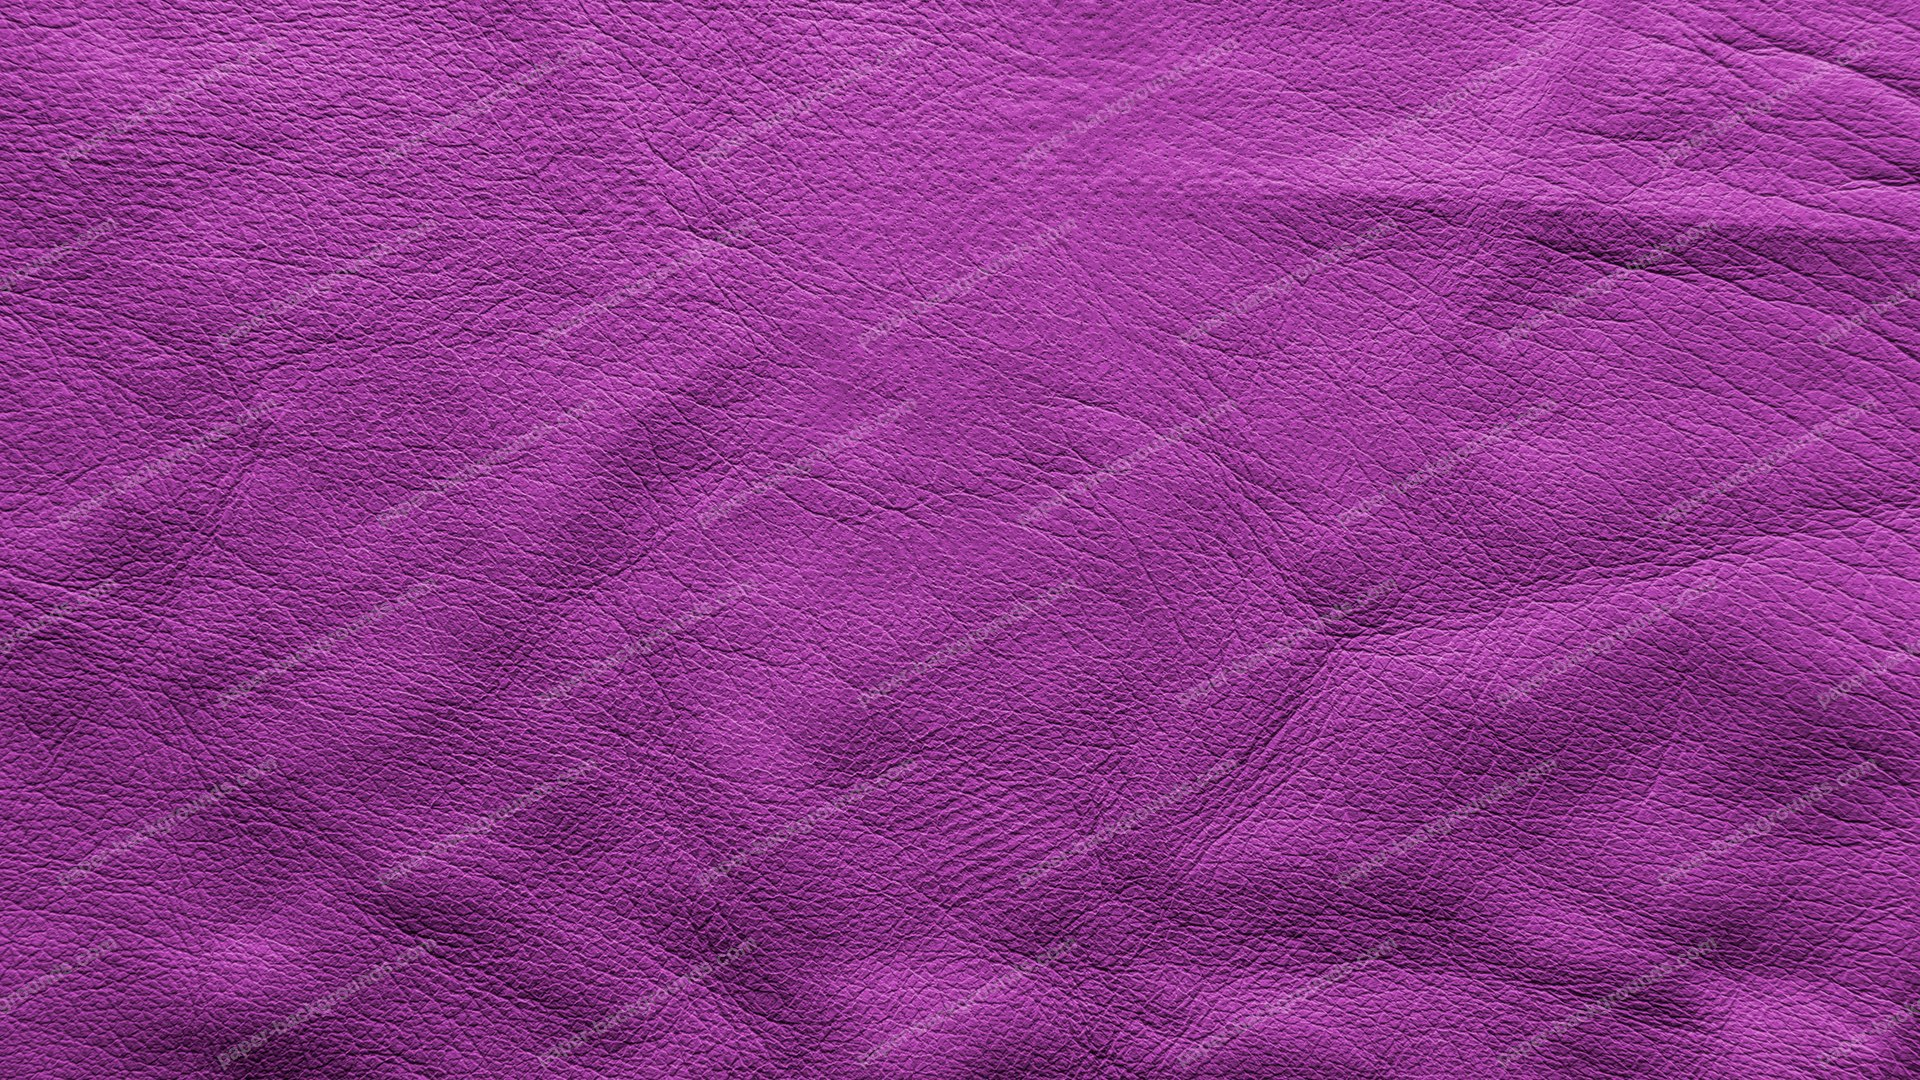 Vintage Purple Soft Leather Background HD